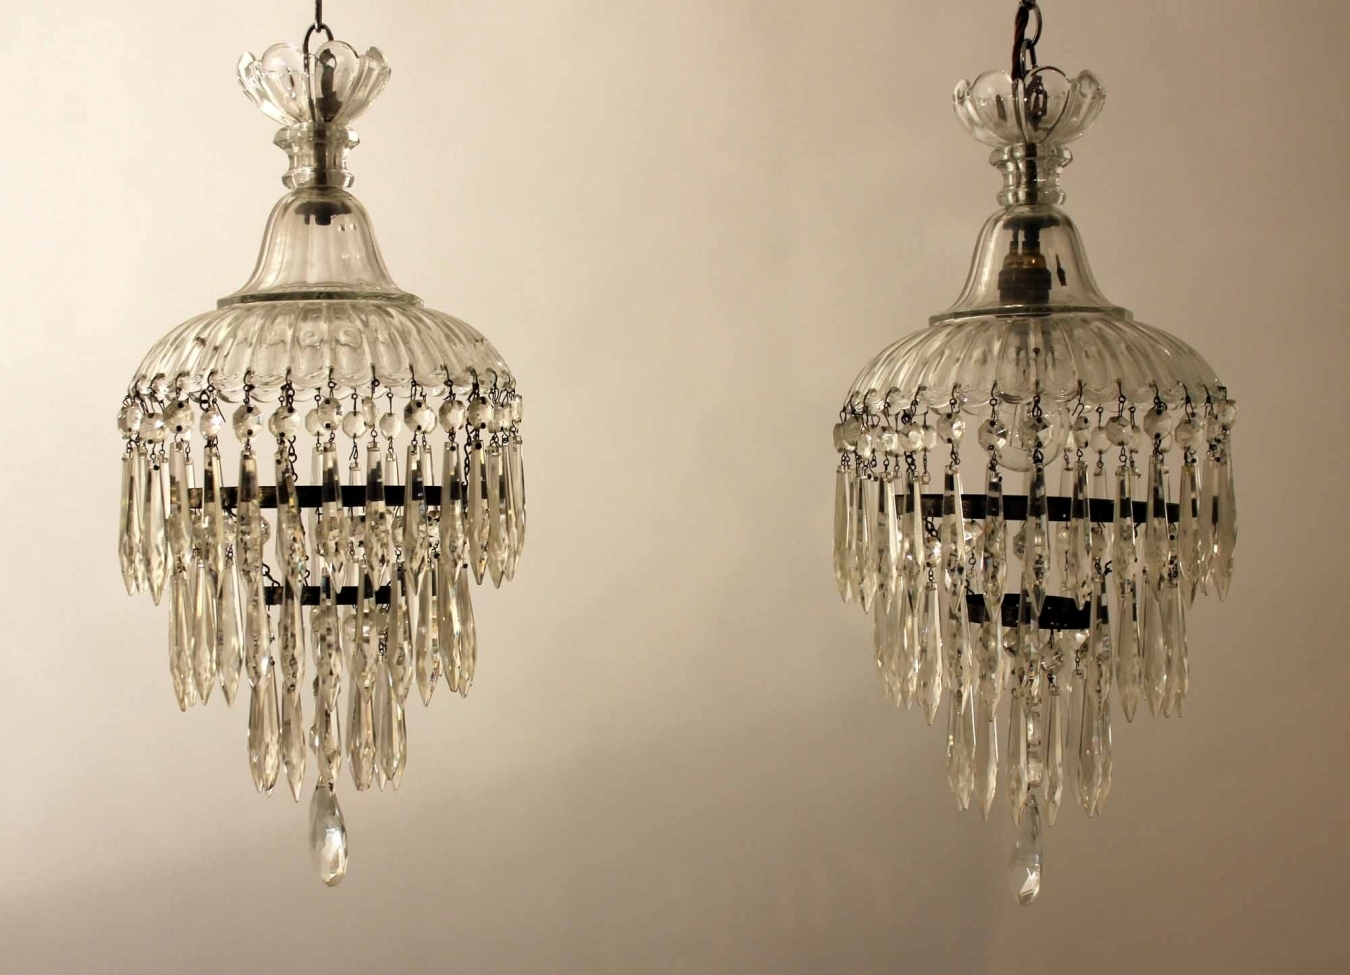 Pair Of Edwardian Chandeliers Trendfirst With Regard To Edwardian Chandeliers (Image 12 of 15)